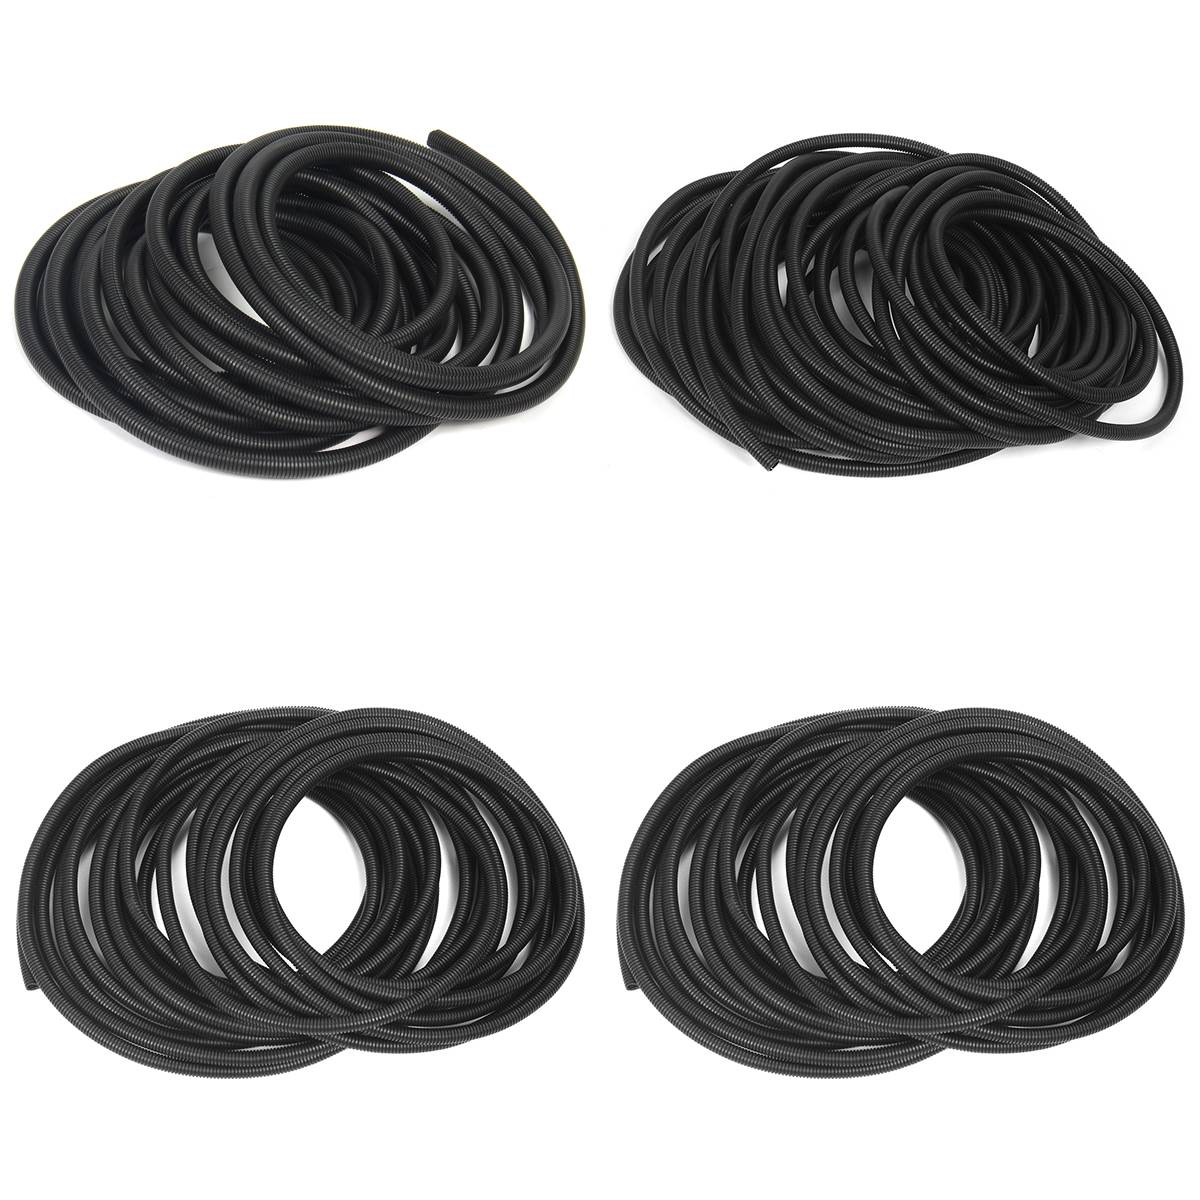 "100 Ft 5/16"" Flexible Bellows Hose Corrugated Conduit Cable Split Wire Loom  Polyethylene Tubing Sleeve Tube Pipe-in Wiring Harness from Home  Improvement on ..."